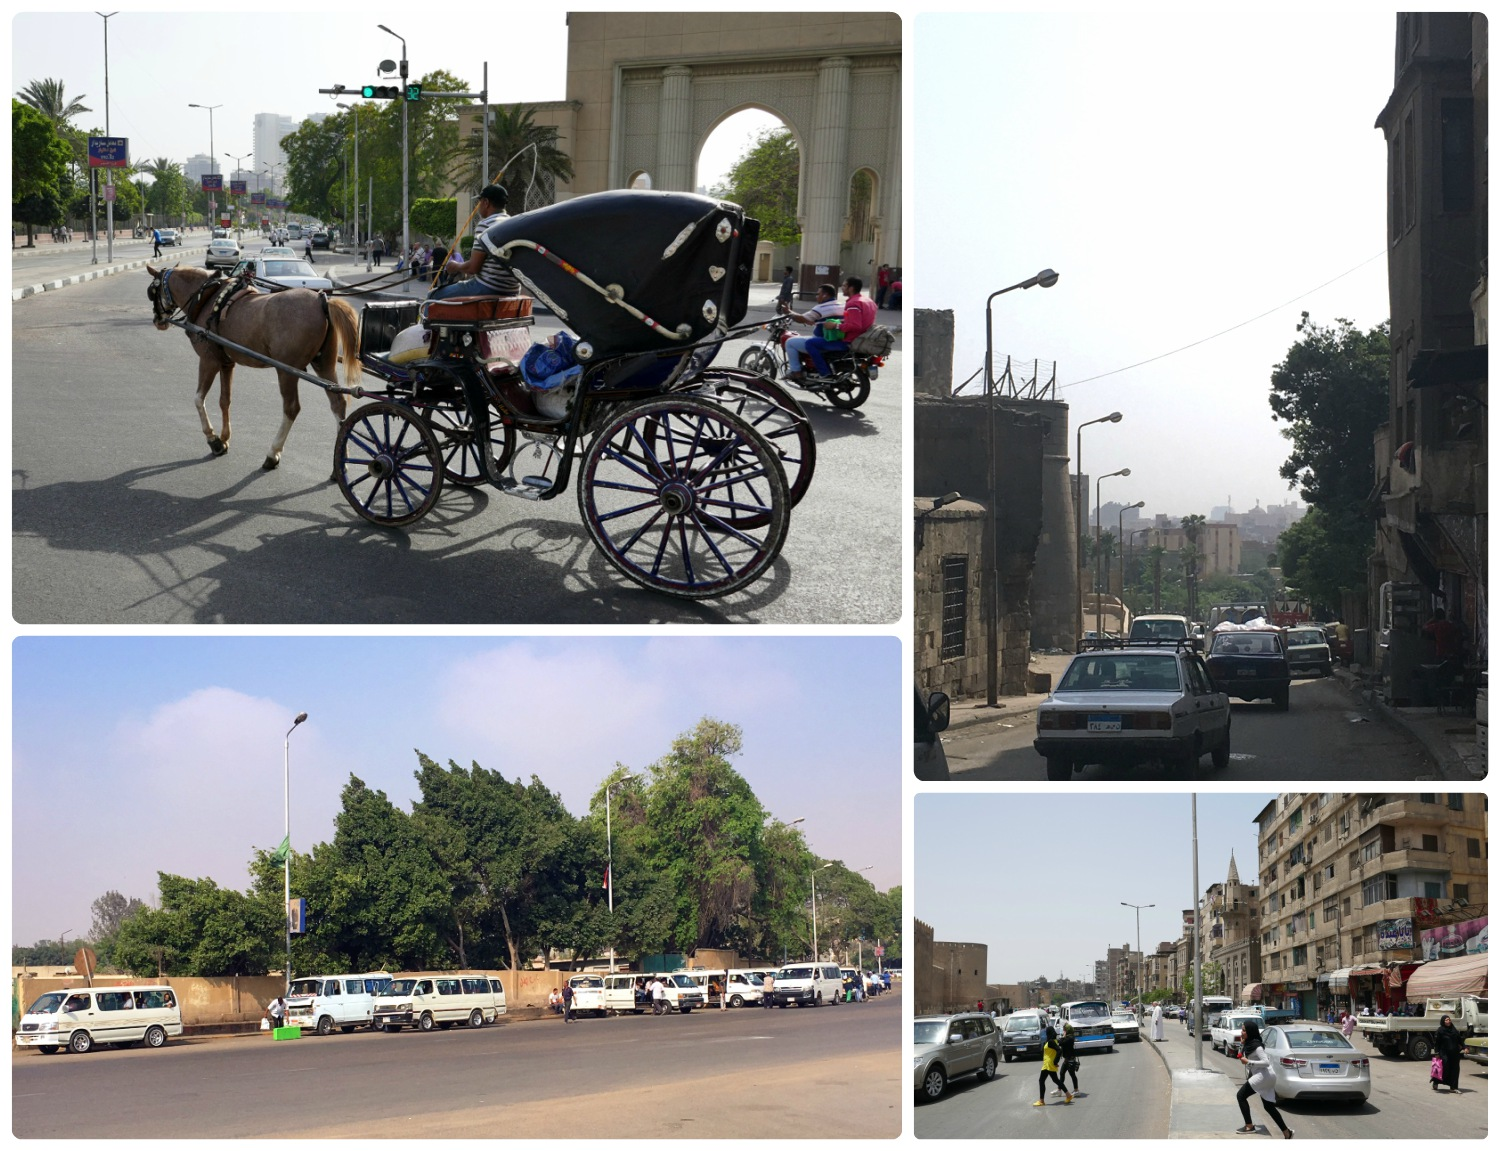 Clockwise (from the top): A horse and carriage for hire, a view down a busy street in Cairo, traffic was always heavy in city center, all the white vans are taxis.